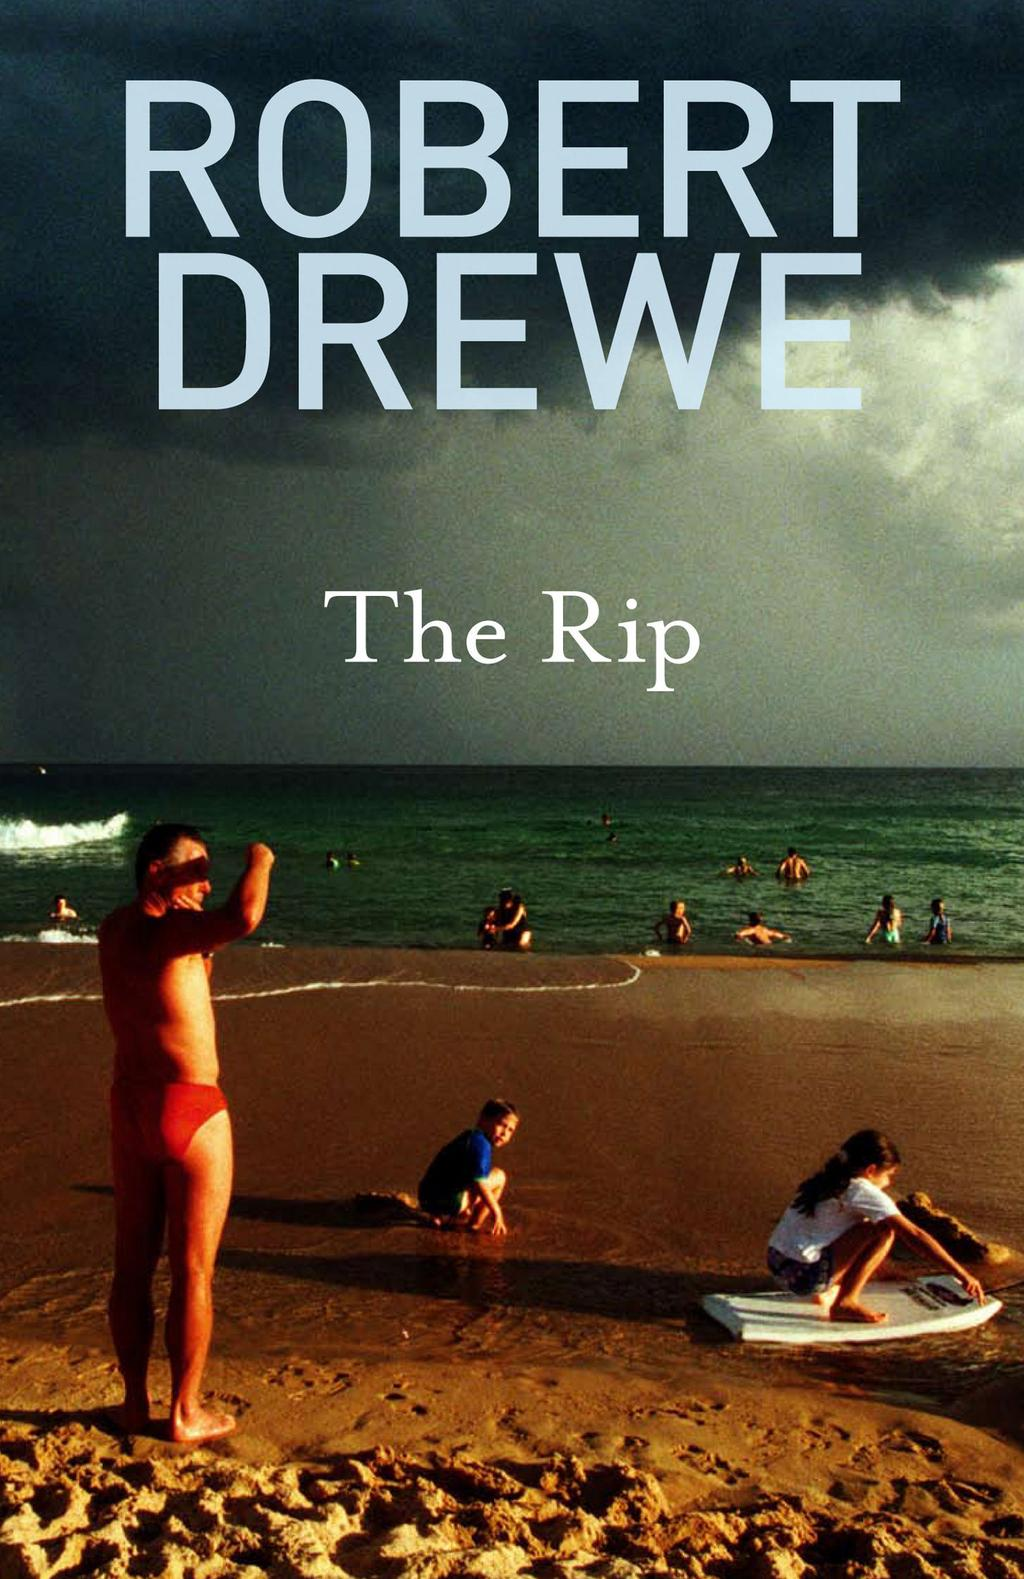 the drowner by robert drewe essay As carefully composed as a period photograph, australian writer drewe (author of six previous novels, none issued here) frames the love story at the heart of this generally well-rendered tale with evocations of water and its arid the drowner by get weekly book recommendations.